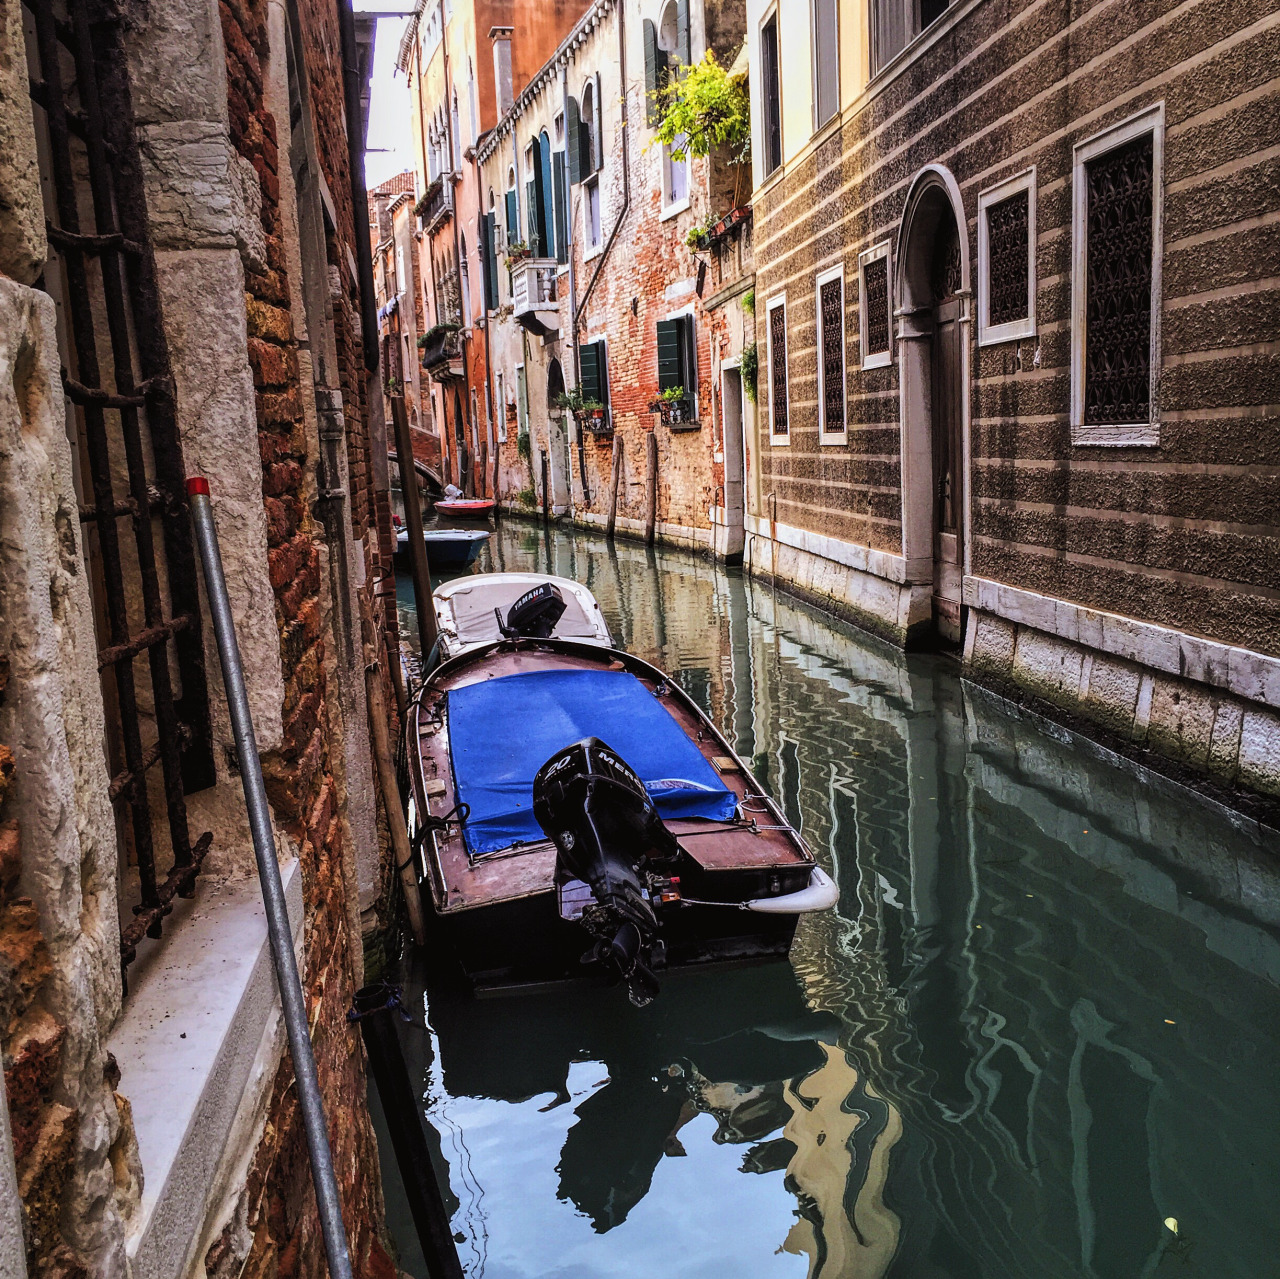 Where there are no streets | Memories of Venice #2